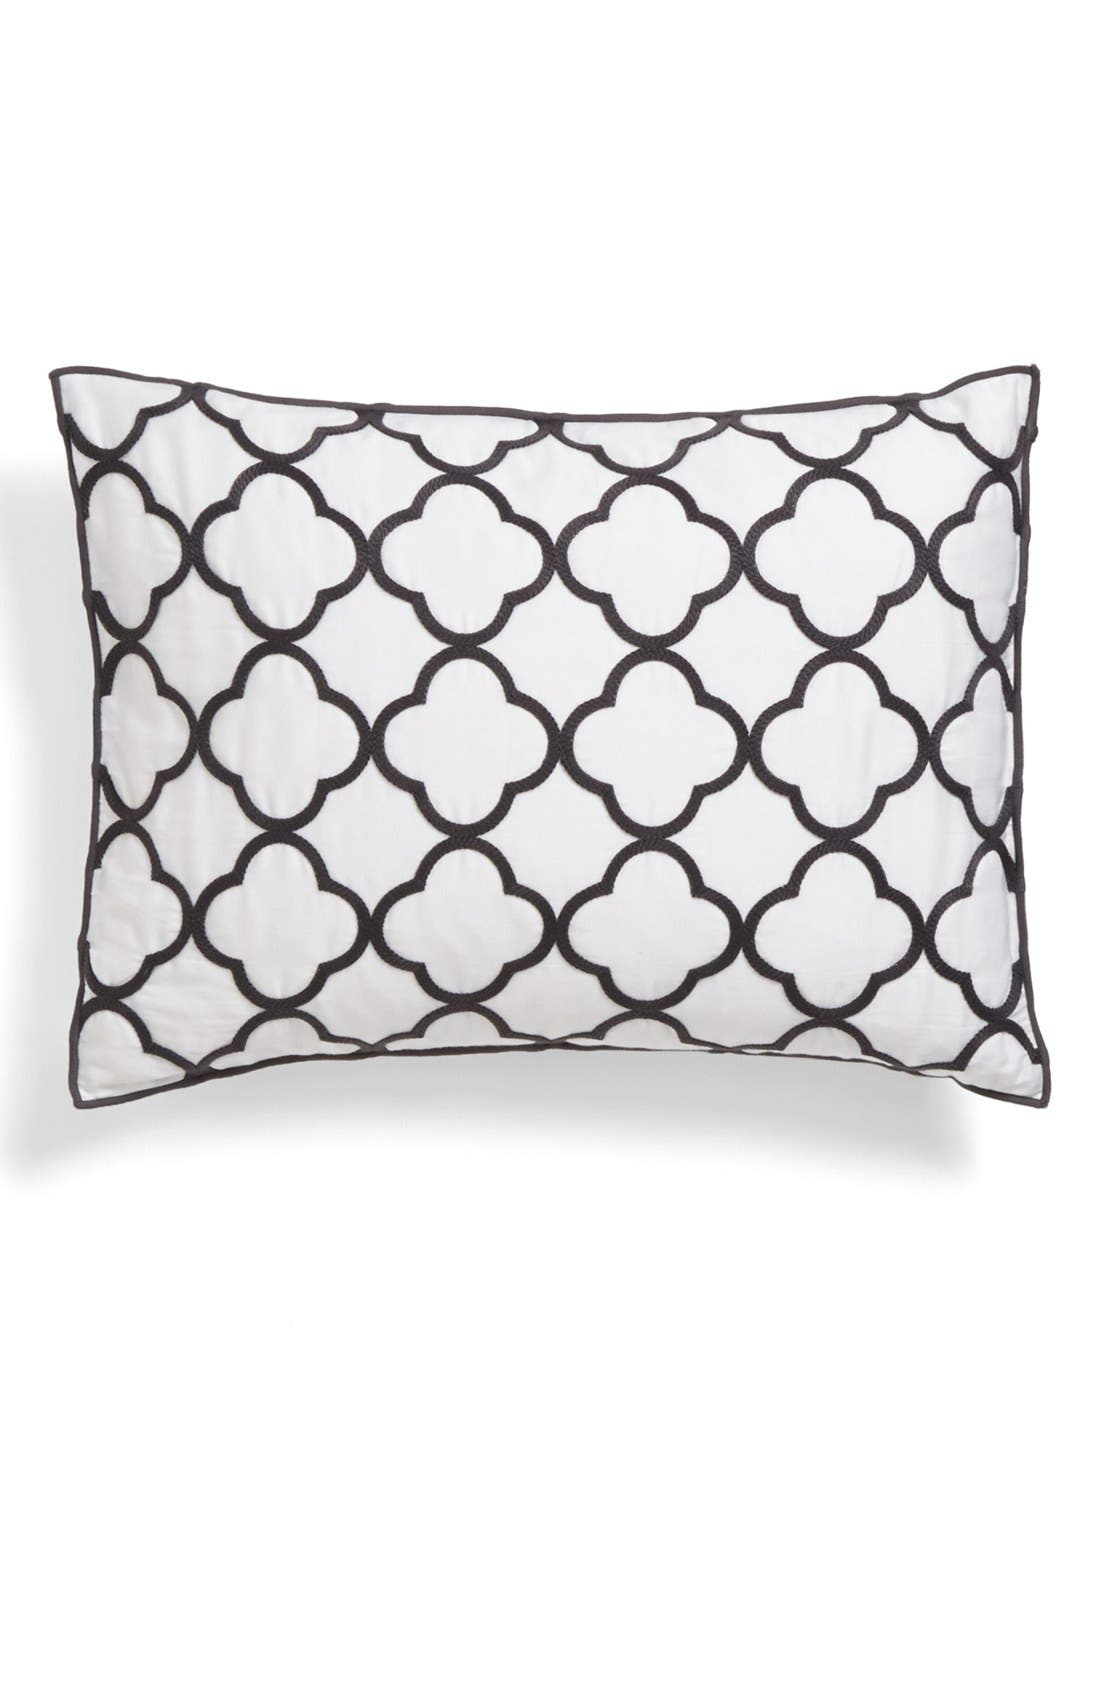 Alternate Image 1 Selected - Vera Wang 'Pompom' Pillow